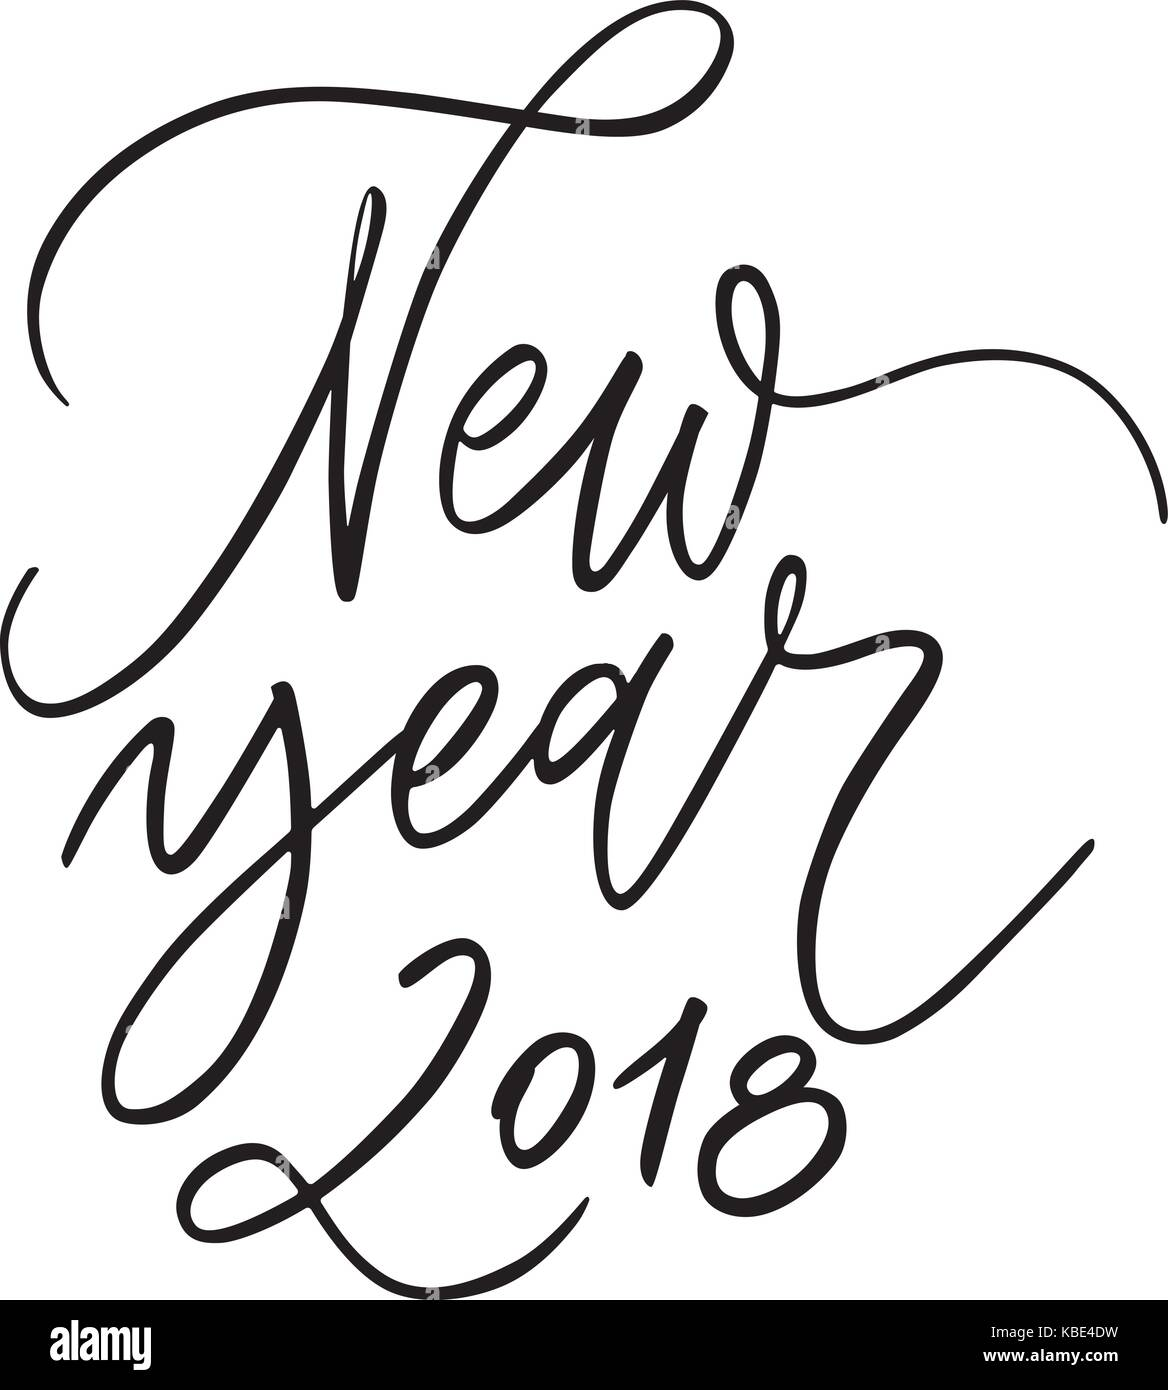 Happy New Year 2018 - phrase. Holiday lettering ink illustration ...